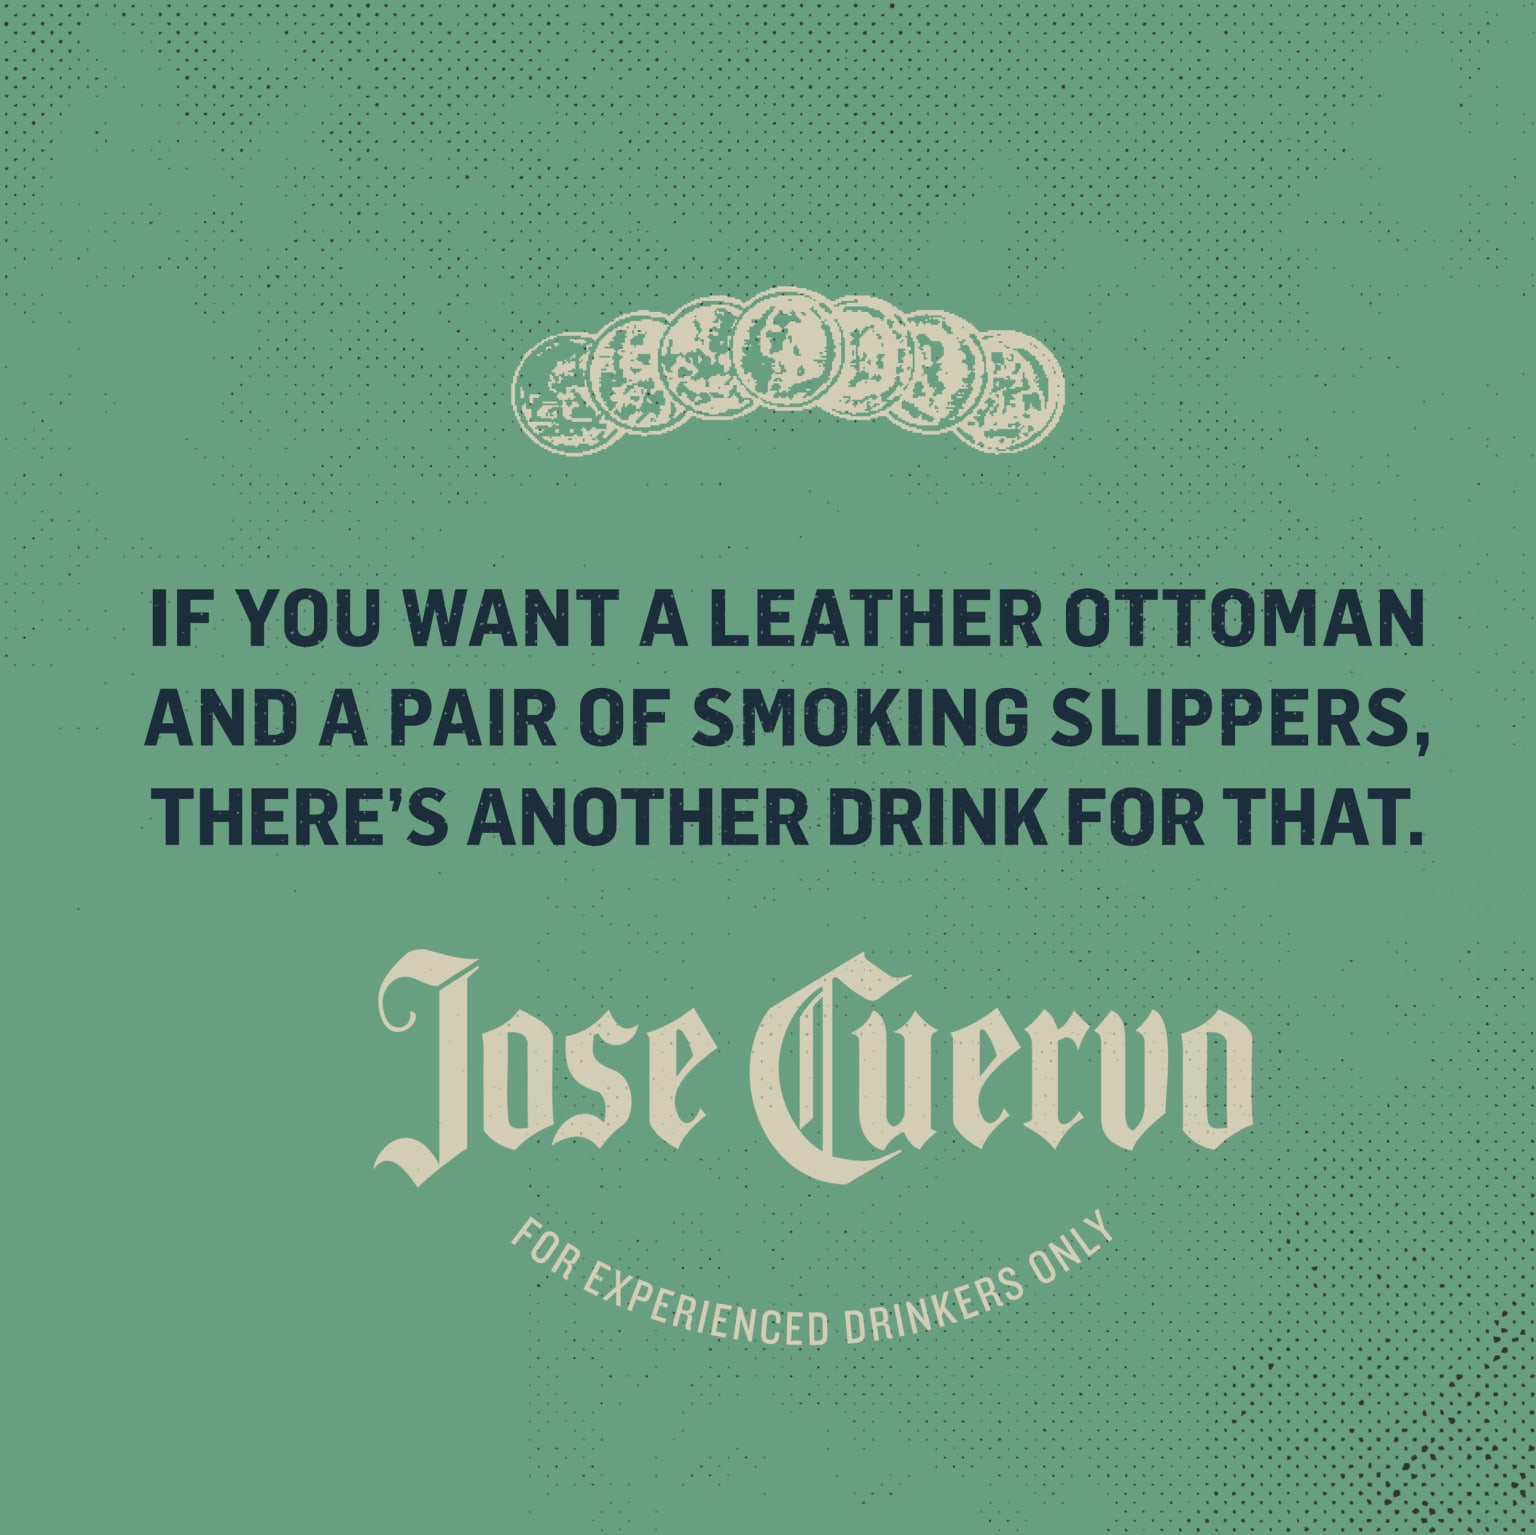 Jose Cuervo | The Experienced Drinkers Only Campaign